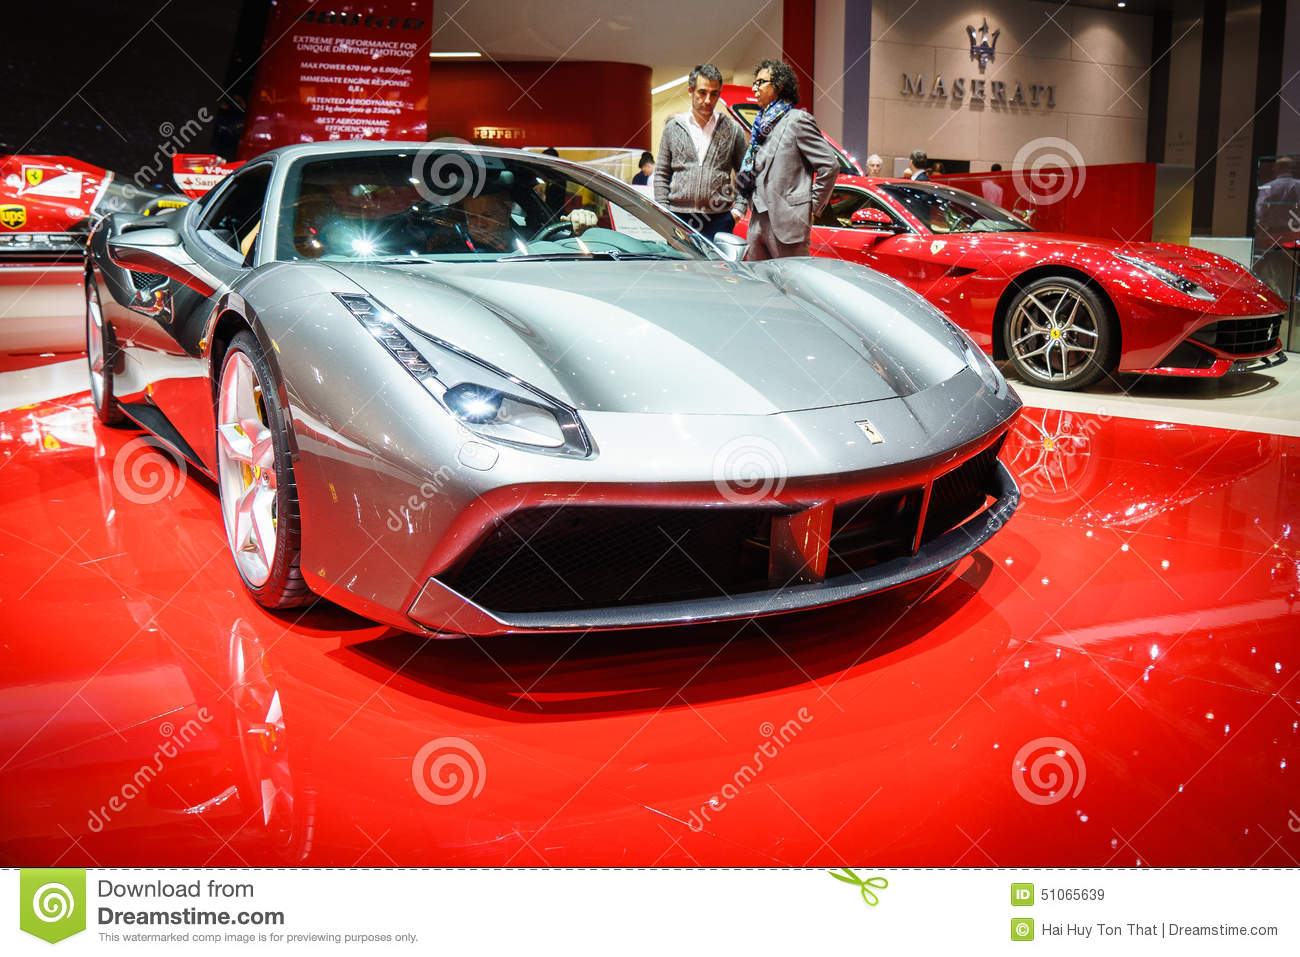 ferrari 488 gtb salon de l 39 automobile geneve 2015 image stock ditorial image 51065639. Black Bedroom Furniture Sets. Home Design Ideas